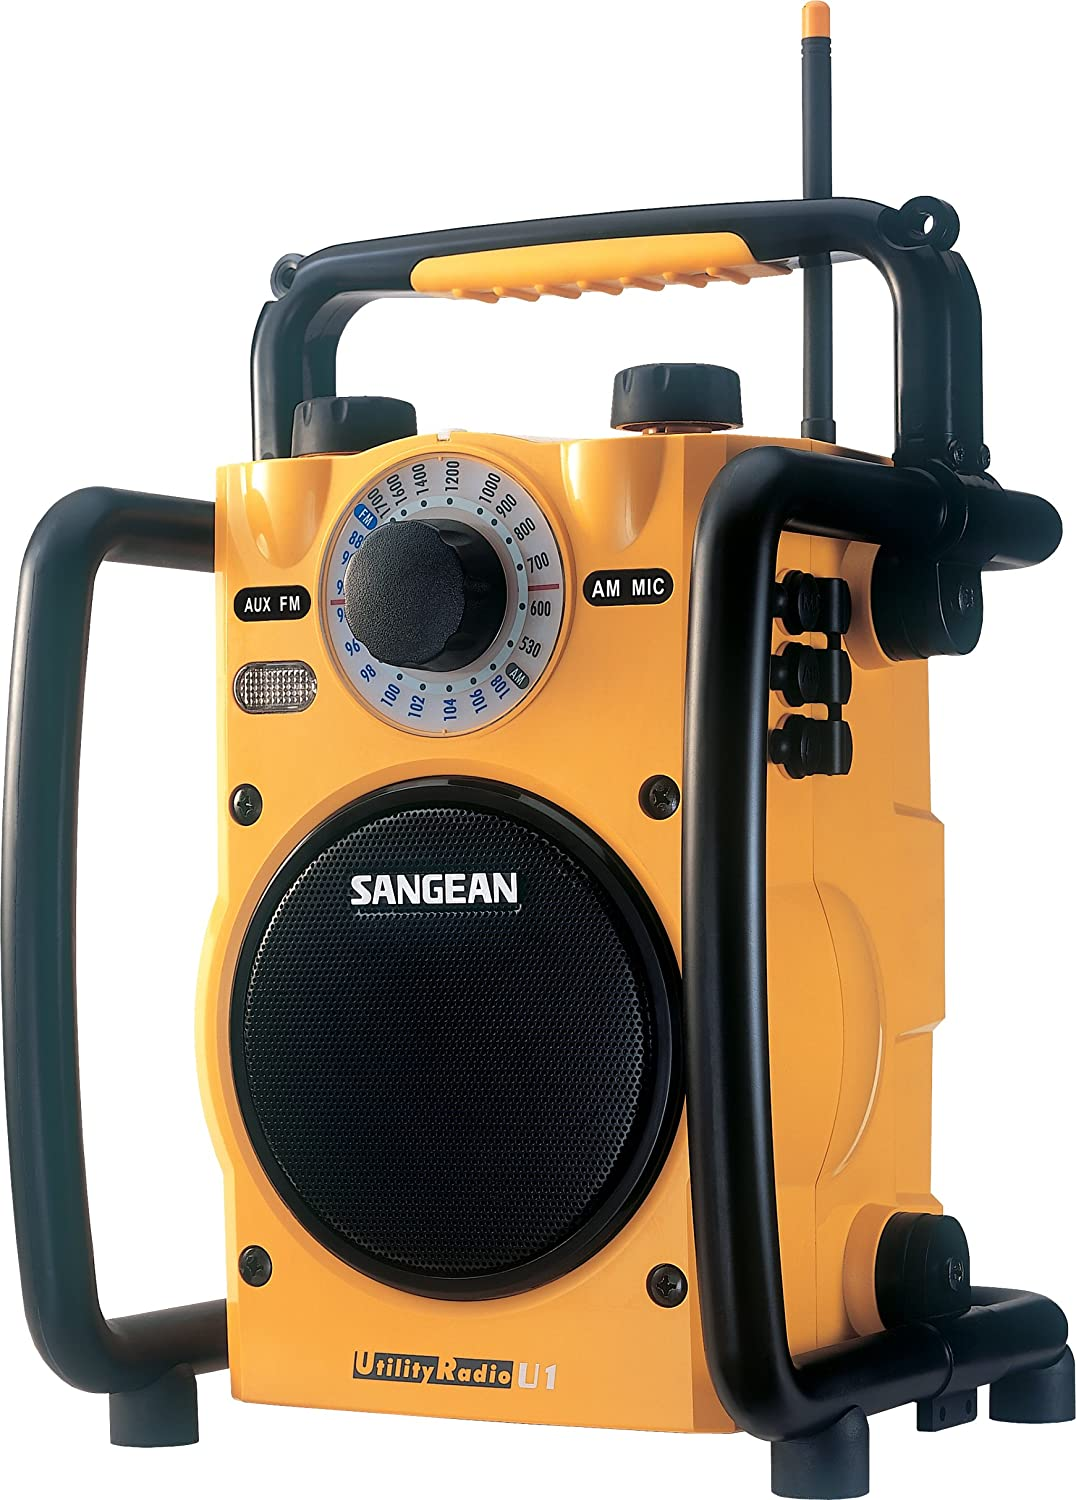 Sangean Jobsite Radio U1 Review